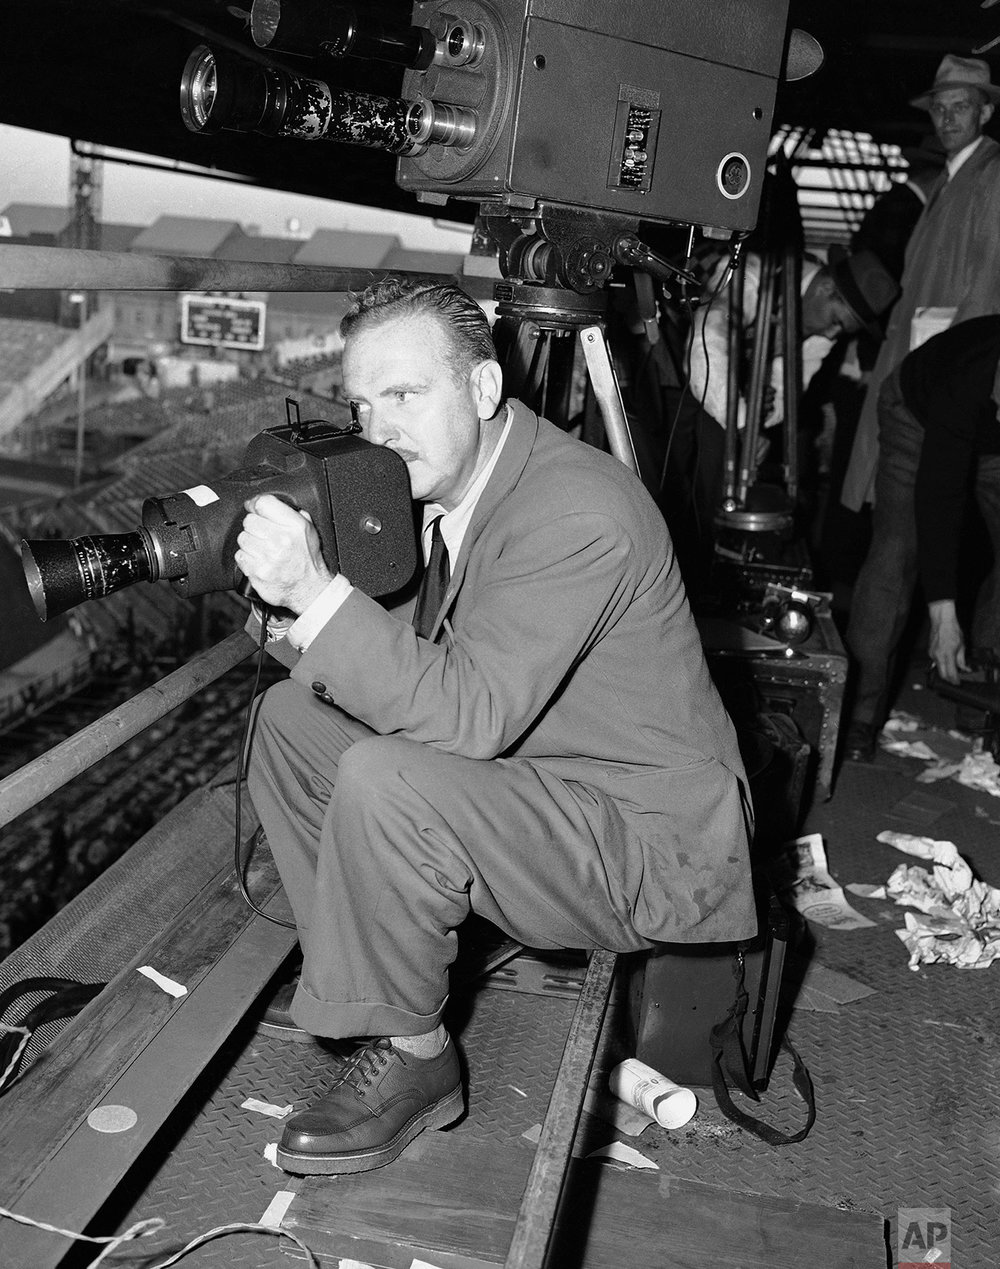 John Lindsay, New York Associated Press photographer, operates the K-25 camera during the second World Series game at Boston, Mass., Oct. 7, 1948. (AP Photo)